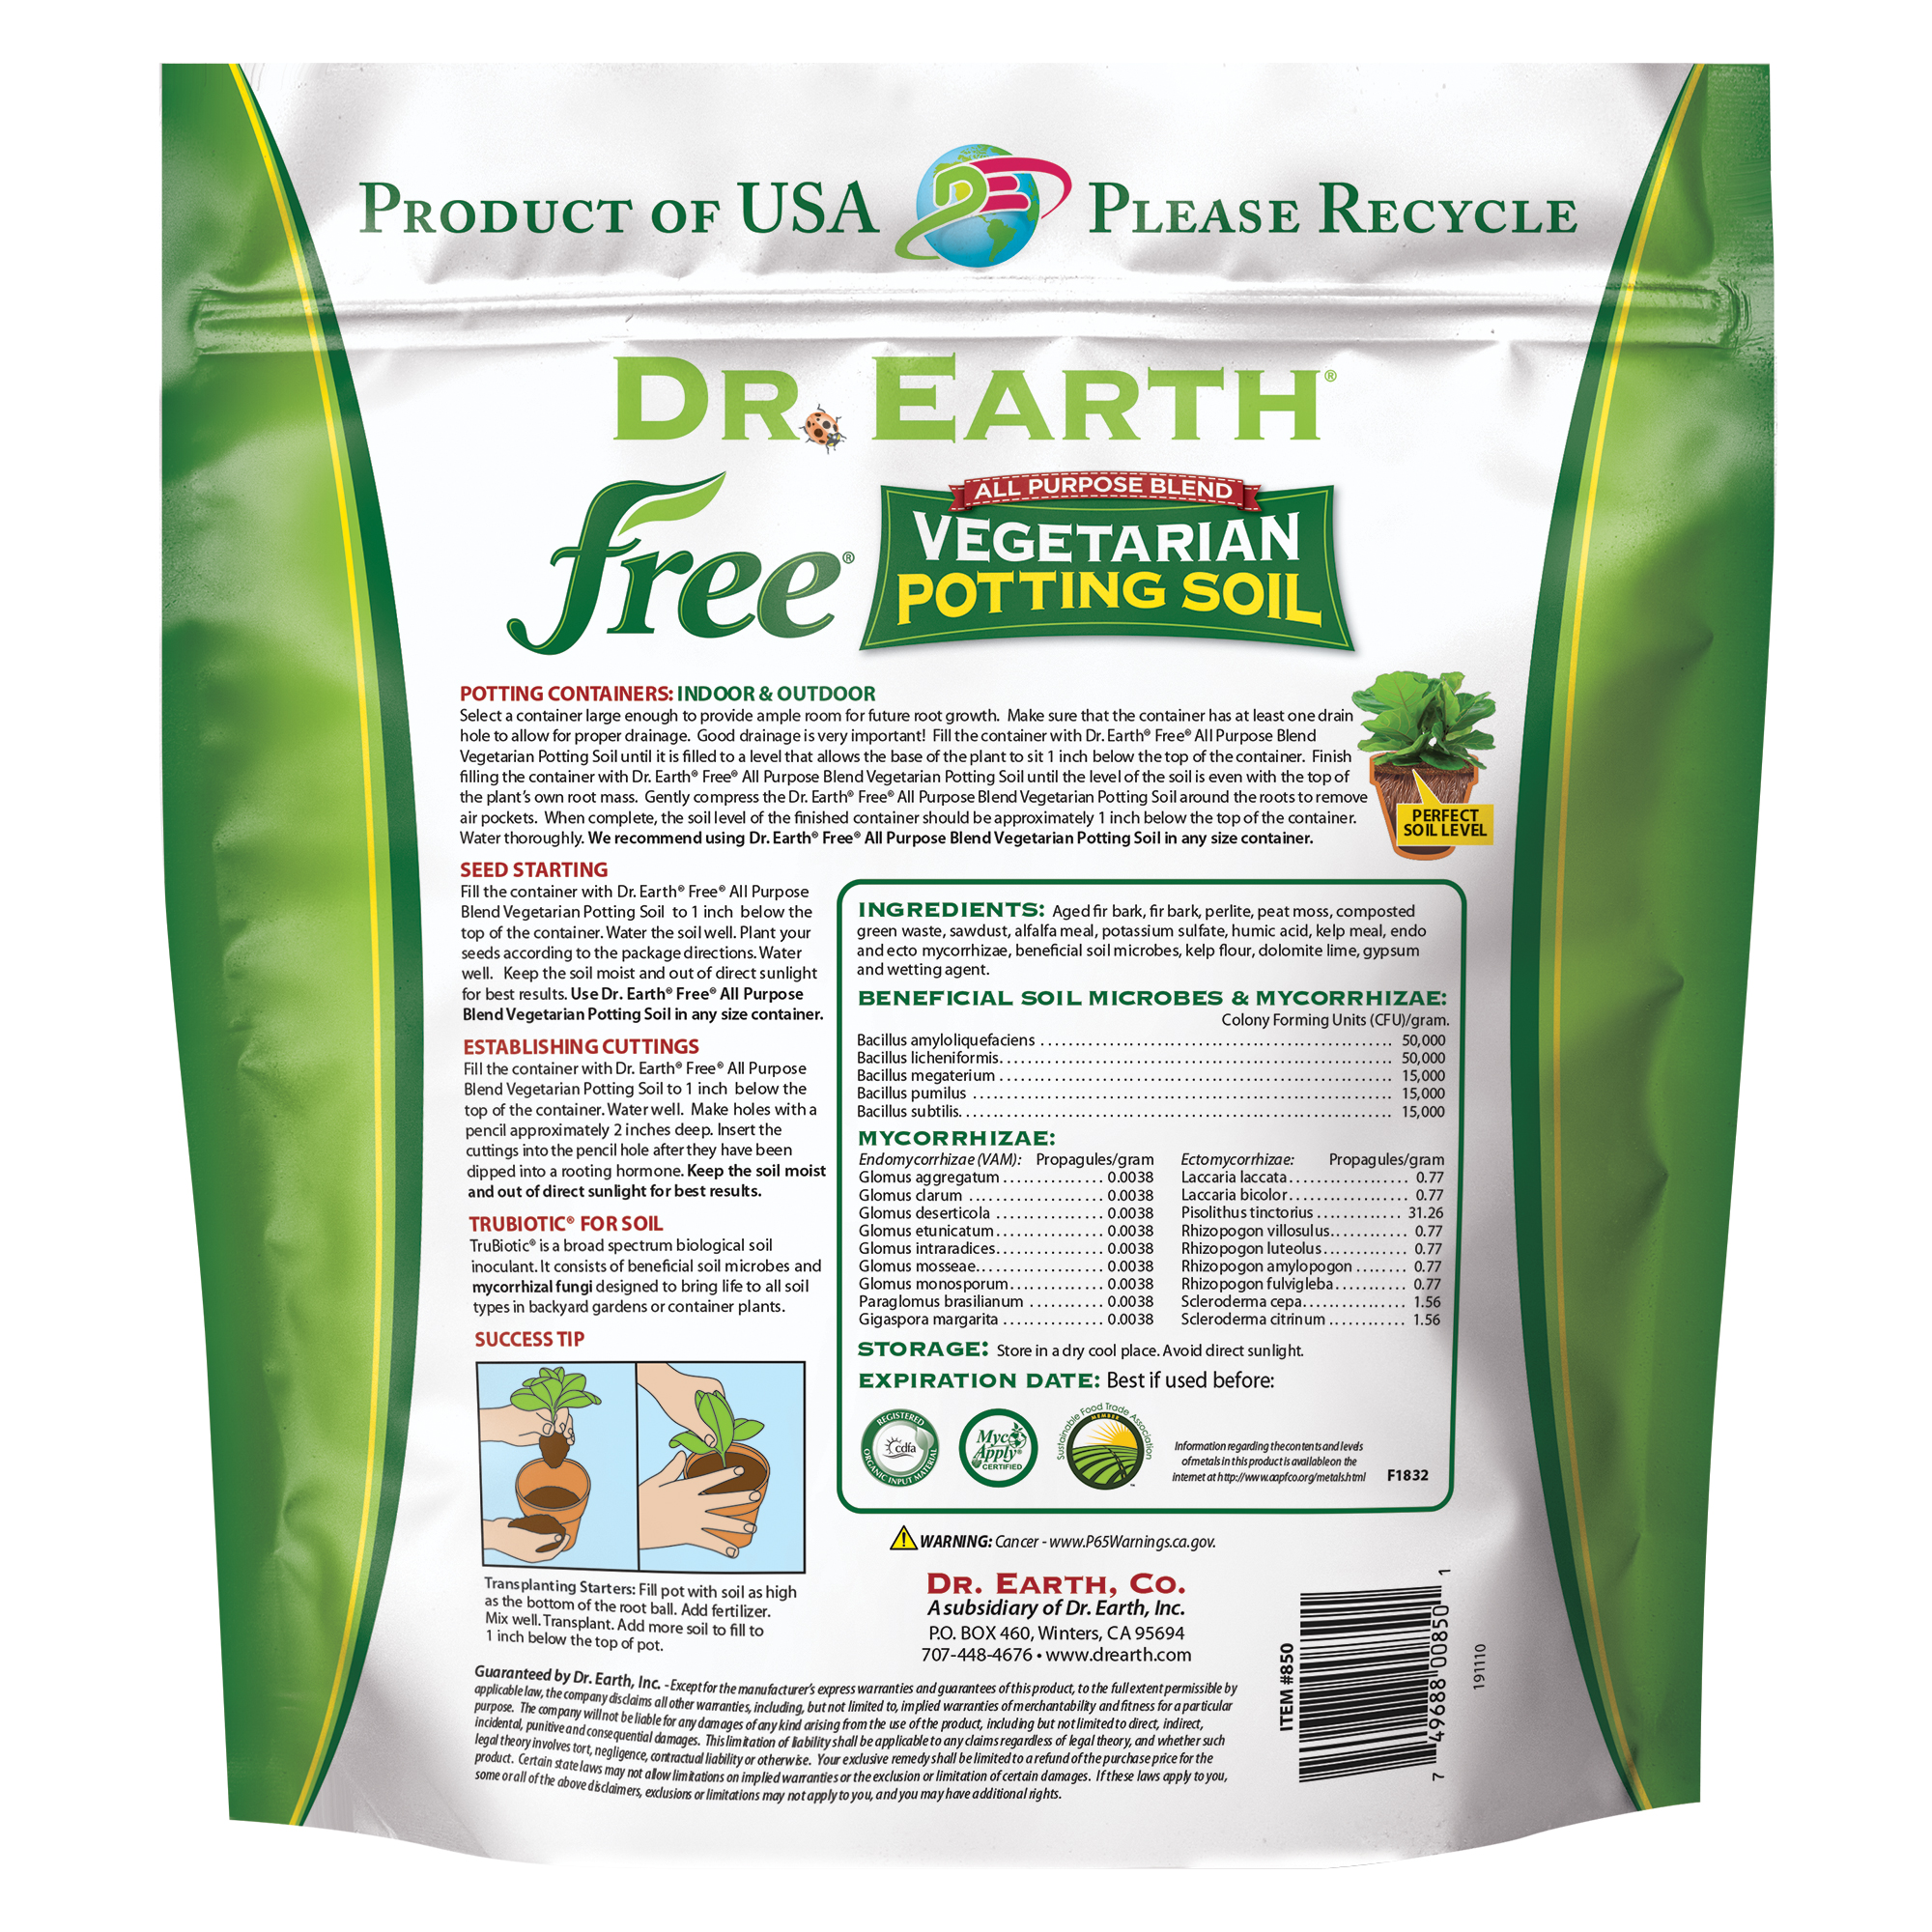 Free Vegetarian Potting Soil Back Information